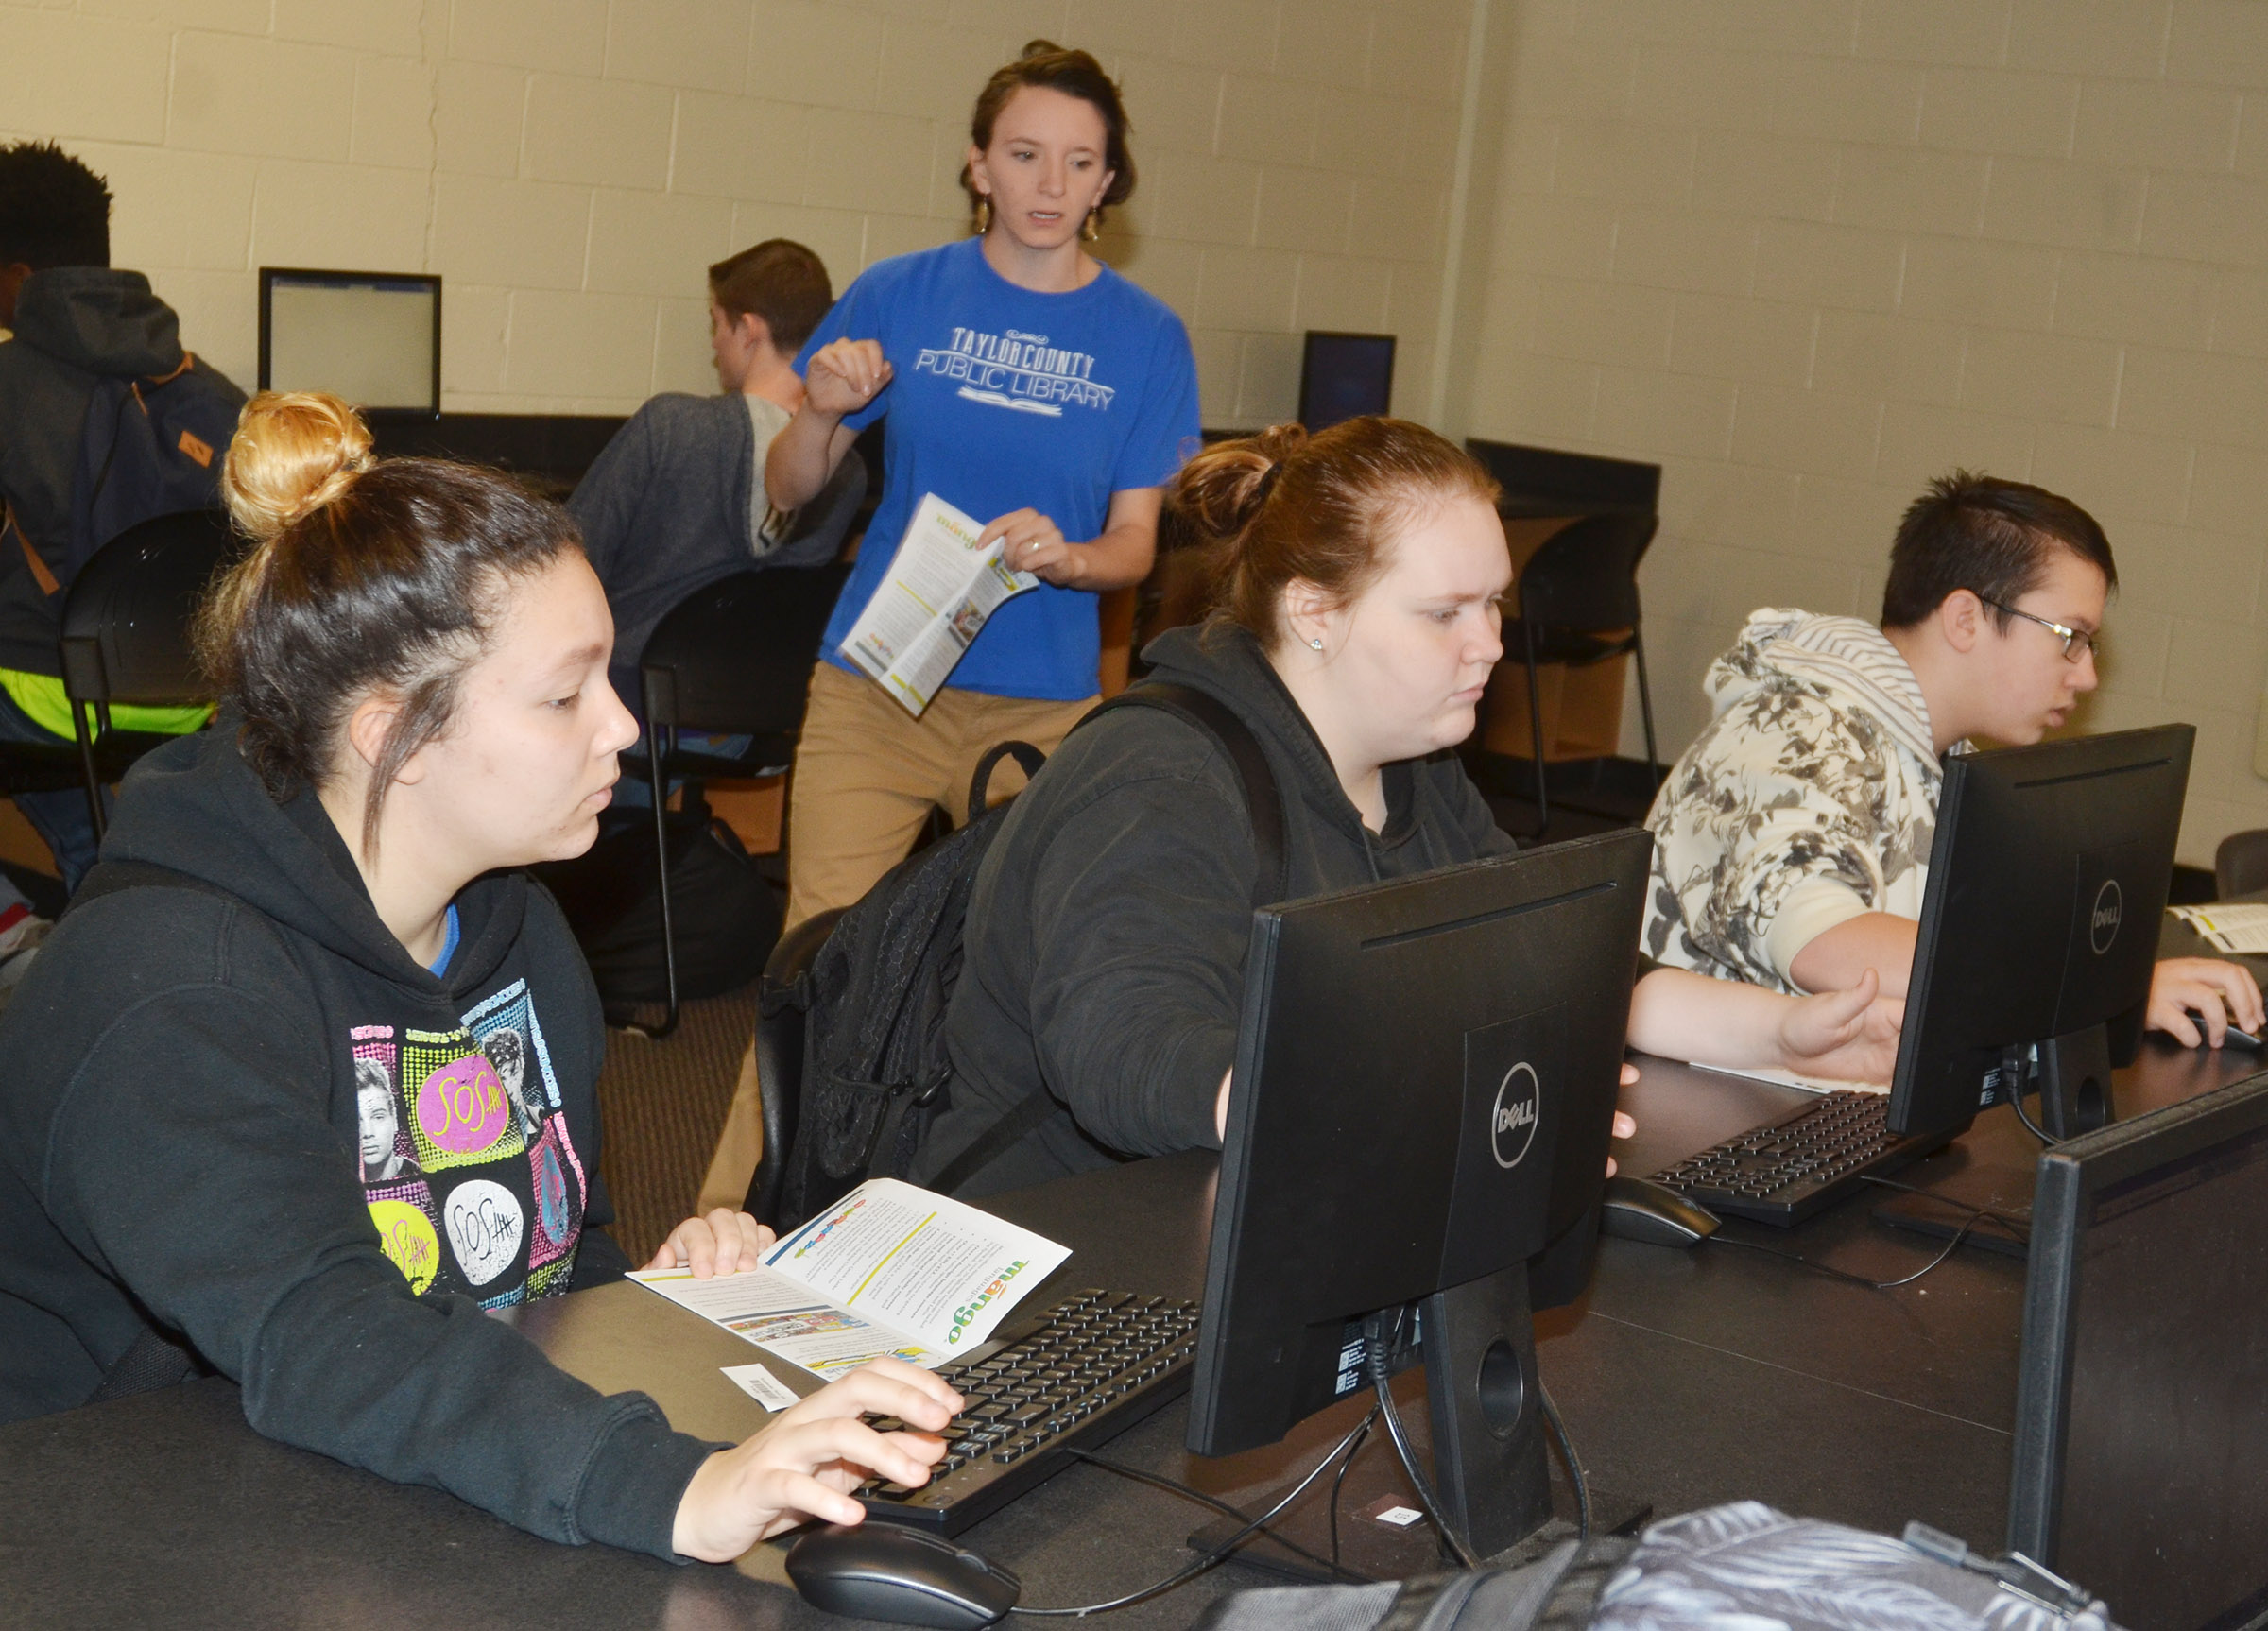 Kelsie Pepper of Taylor County Public Library helps CHS freshmen, from left, Tierra Bridgewater, Trinity Lobb and Nathan Sowders register for access to the library's free digital services.